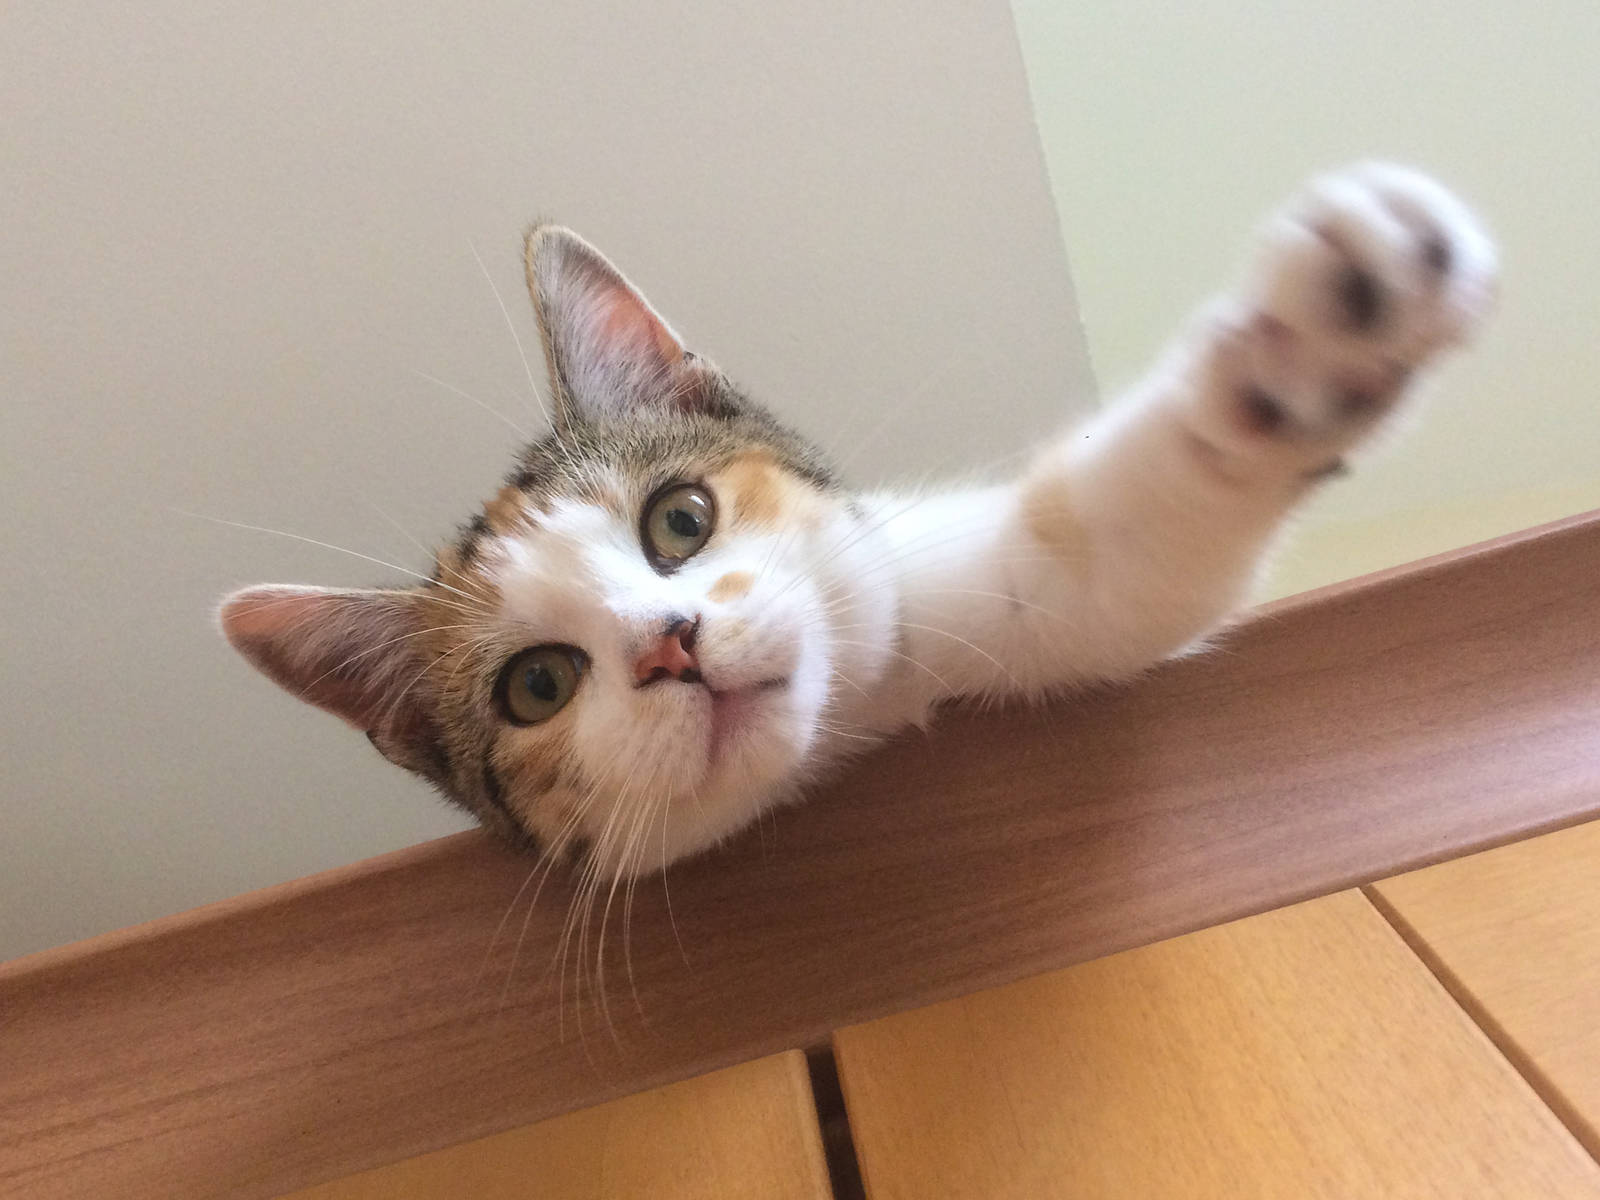 Kitter gives pleasent greeting